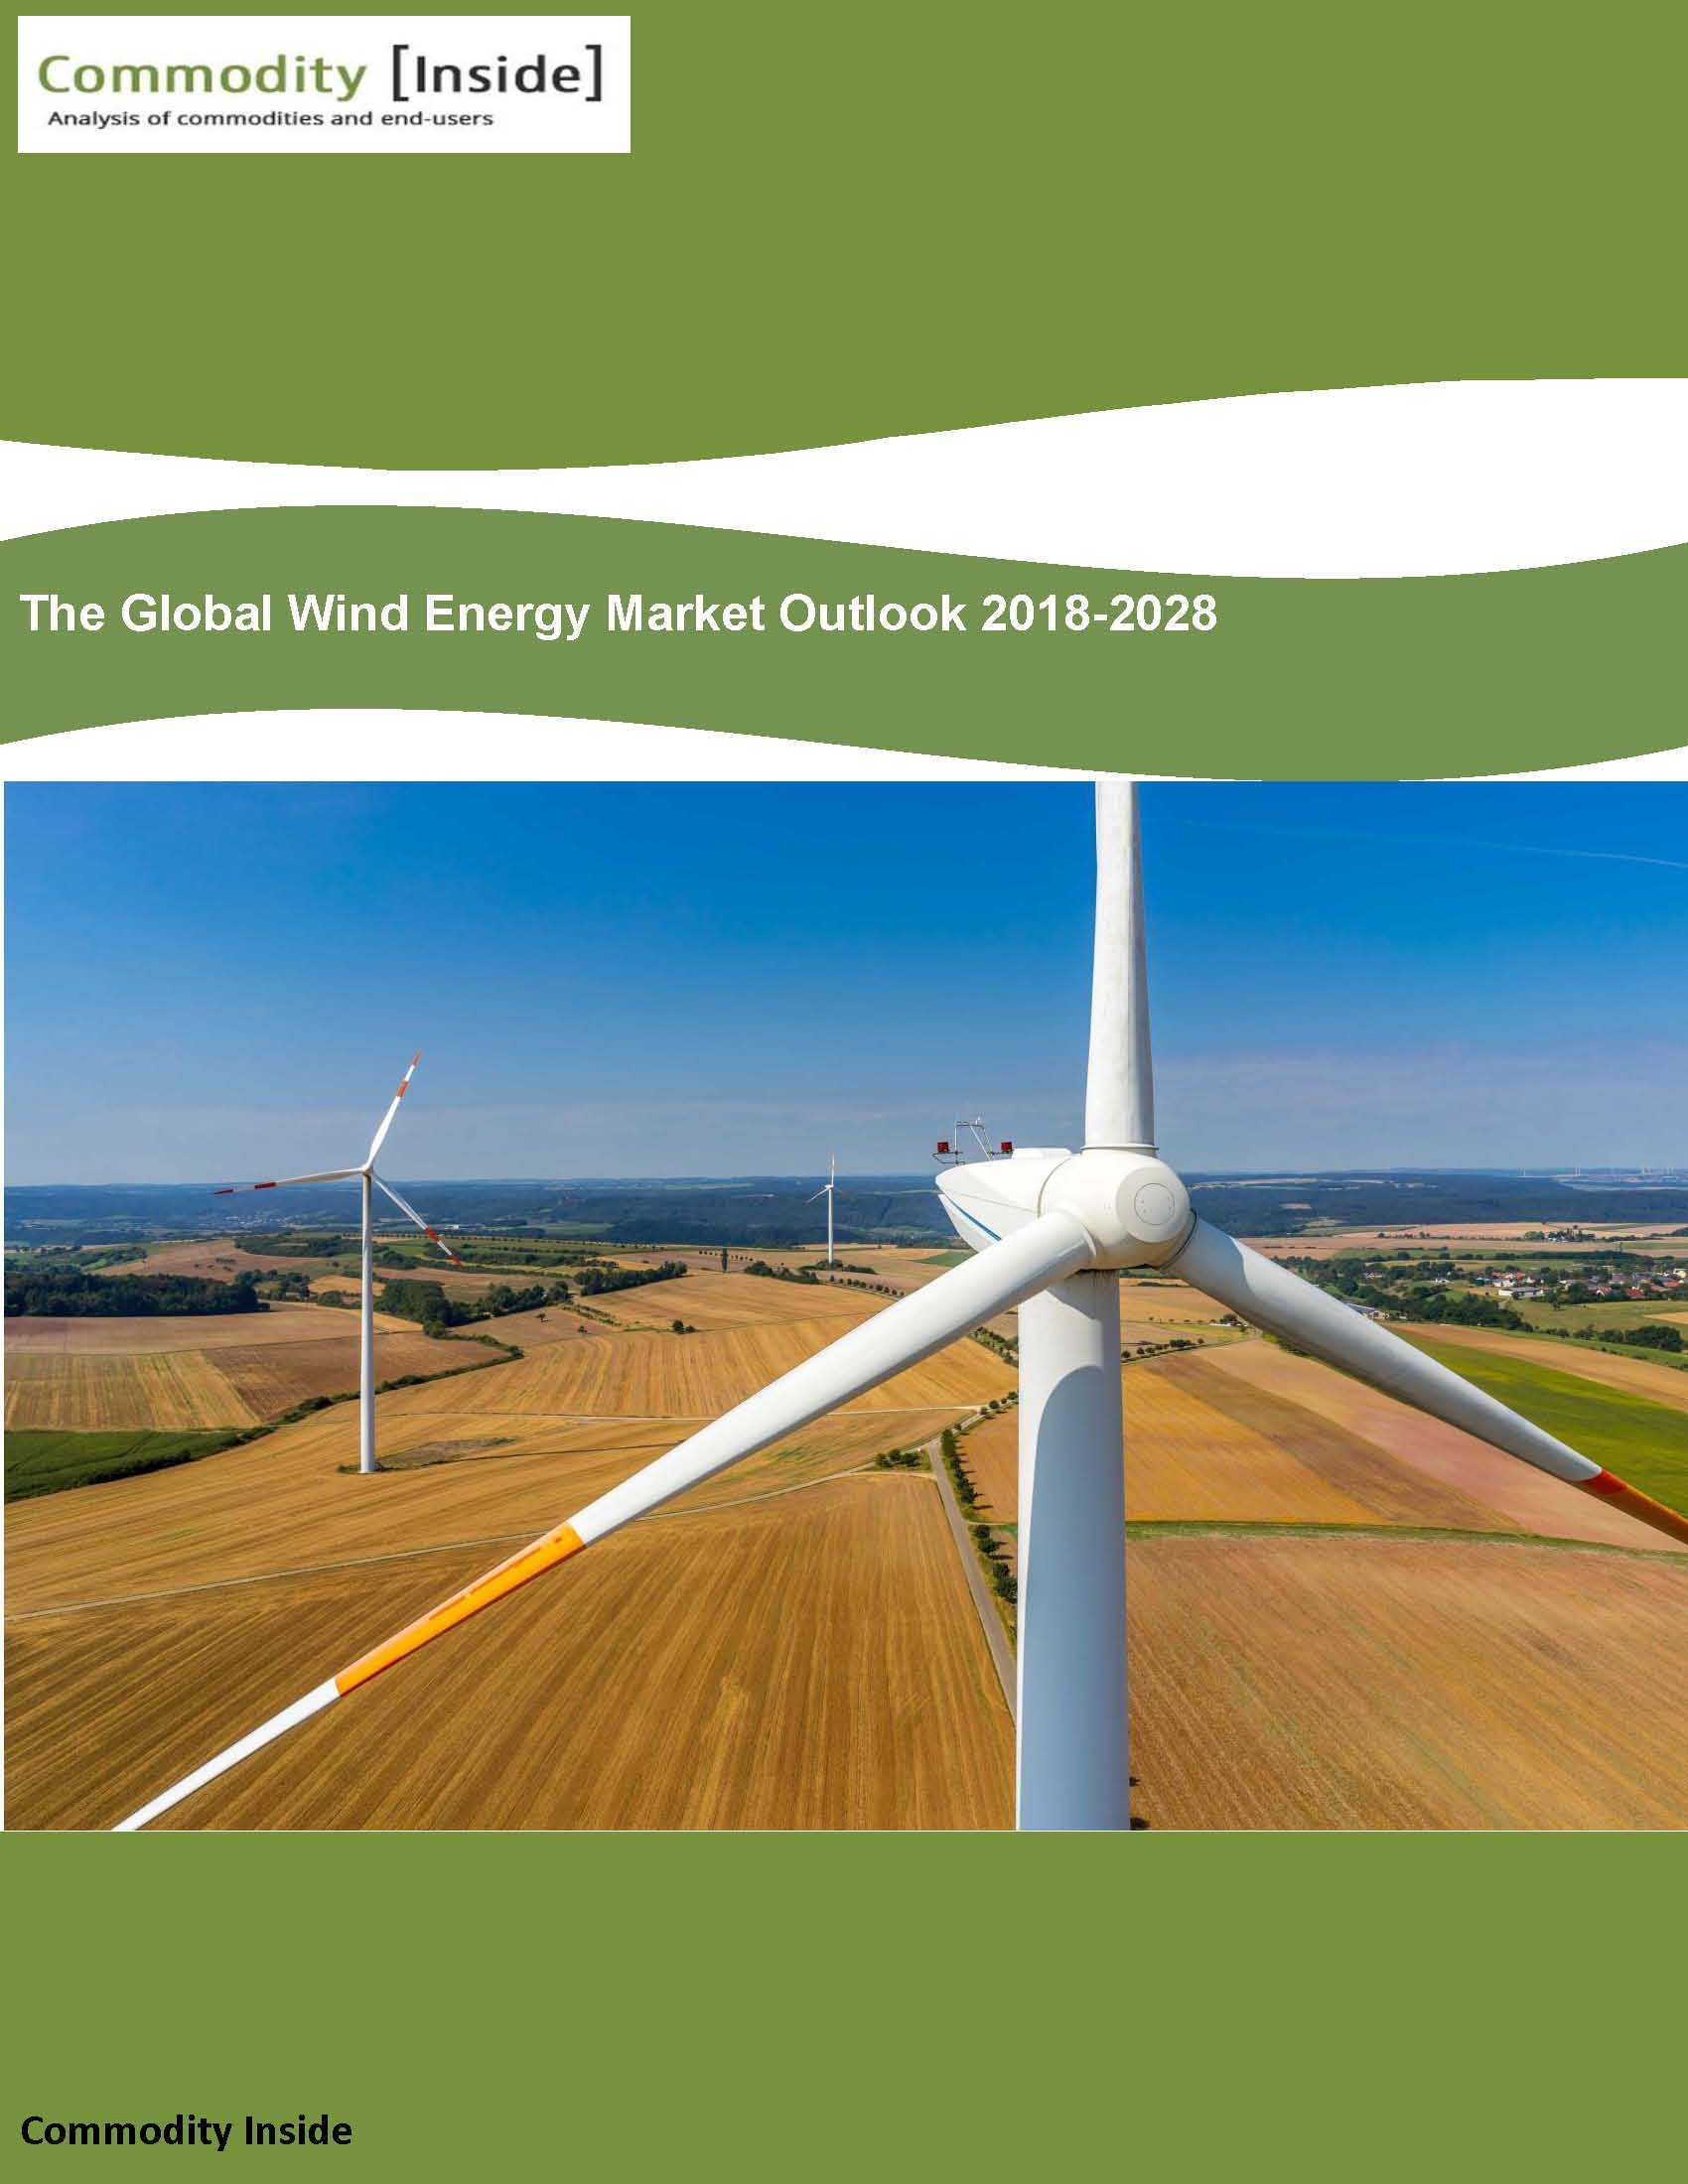 The Global Wind Energy Market Outlook 2018-2028